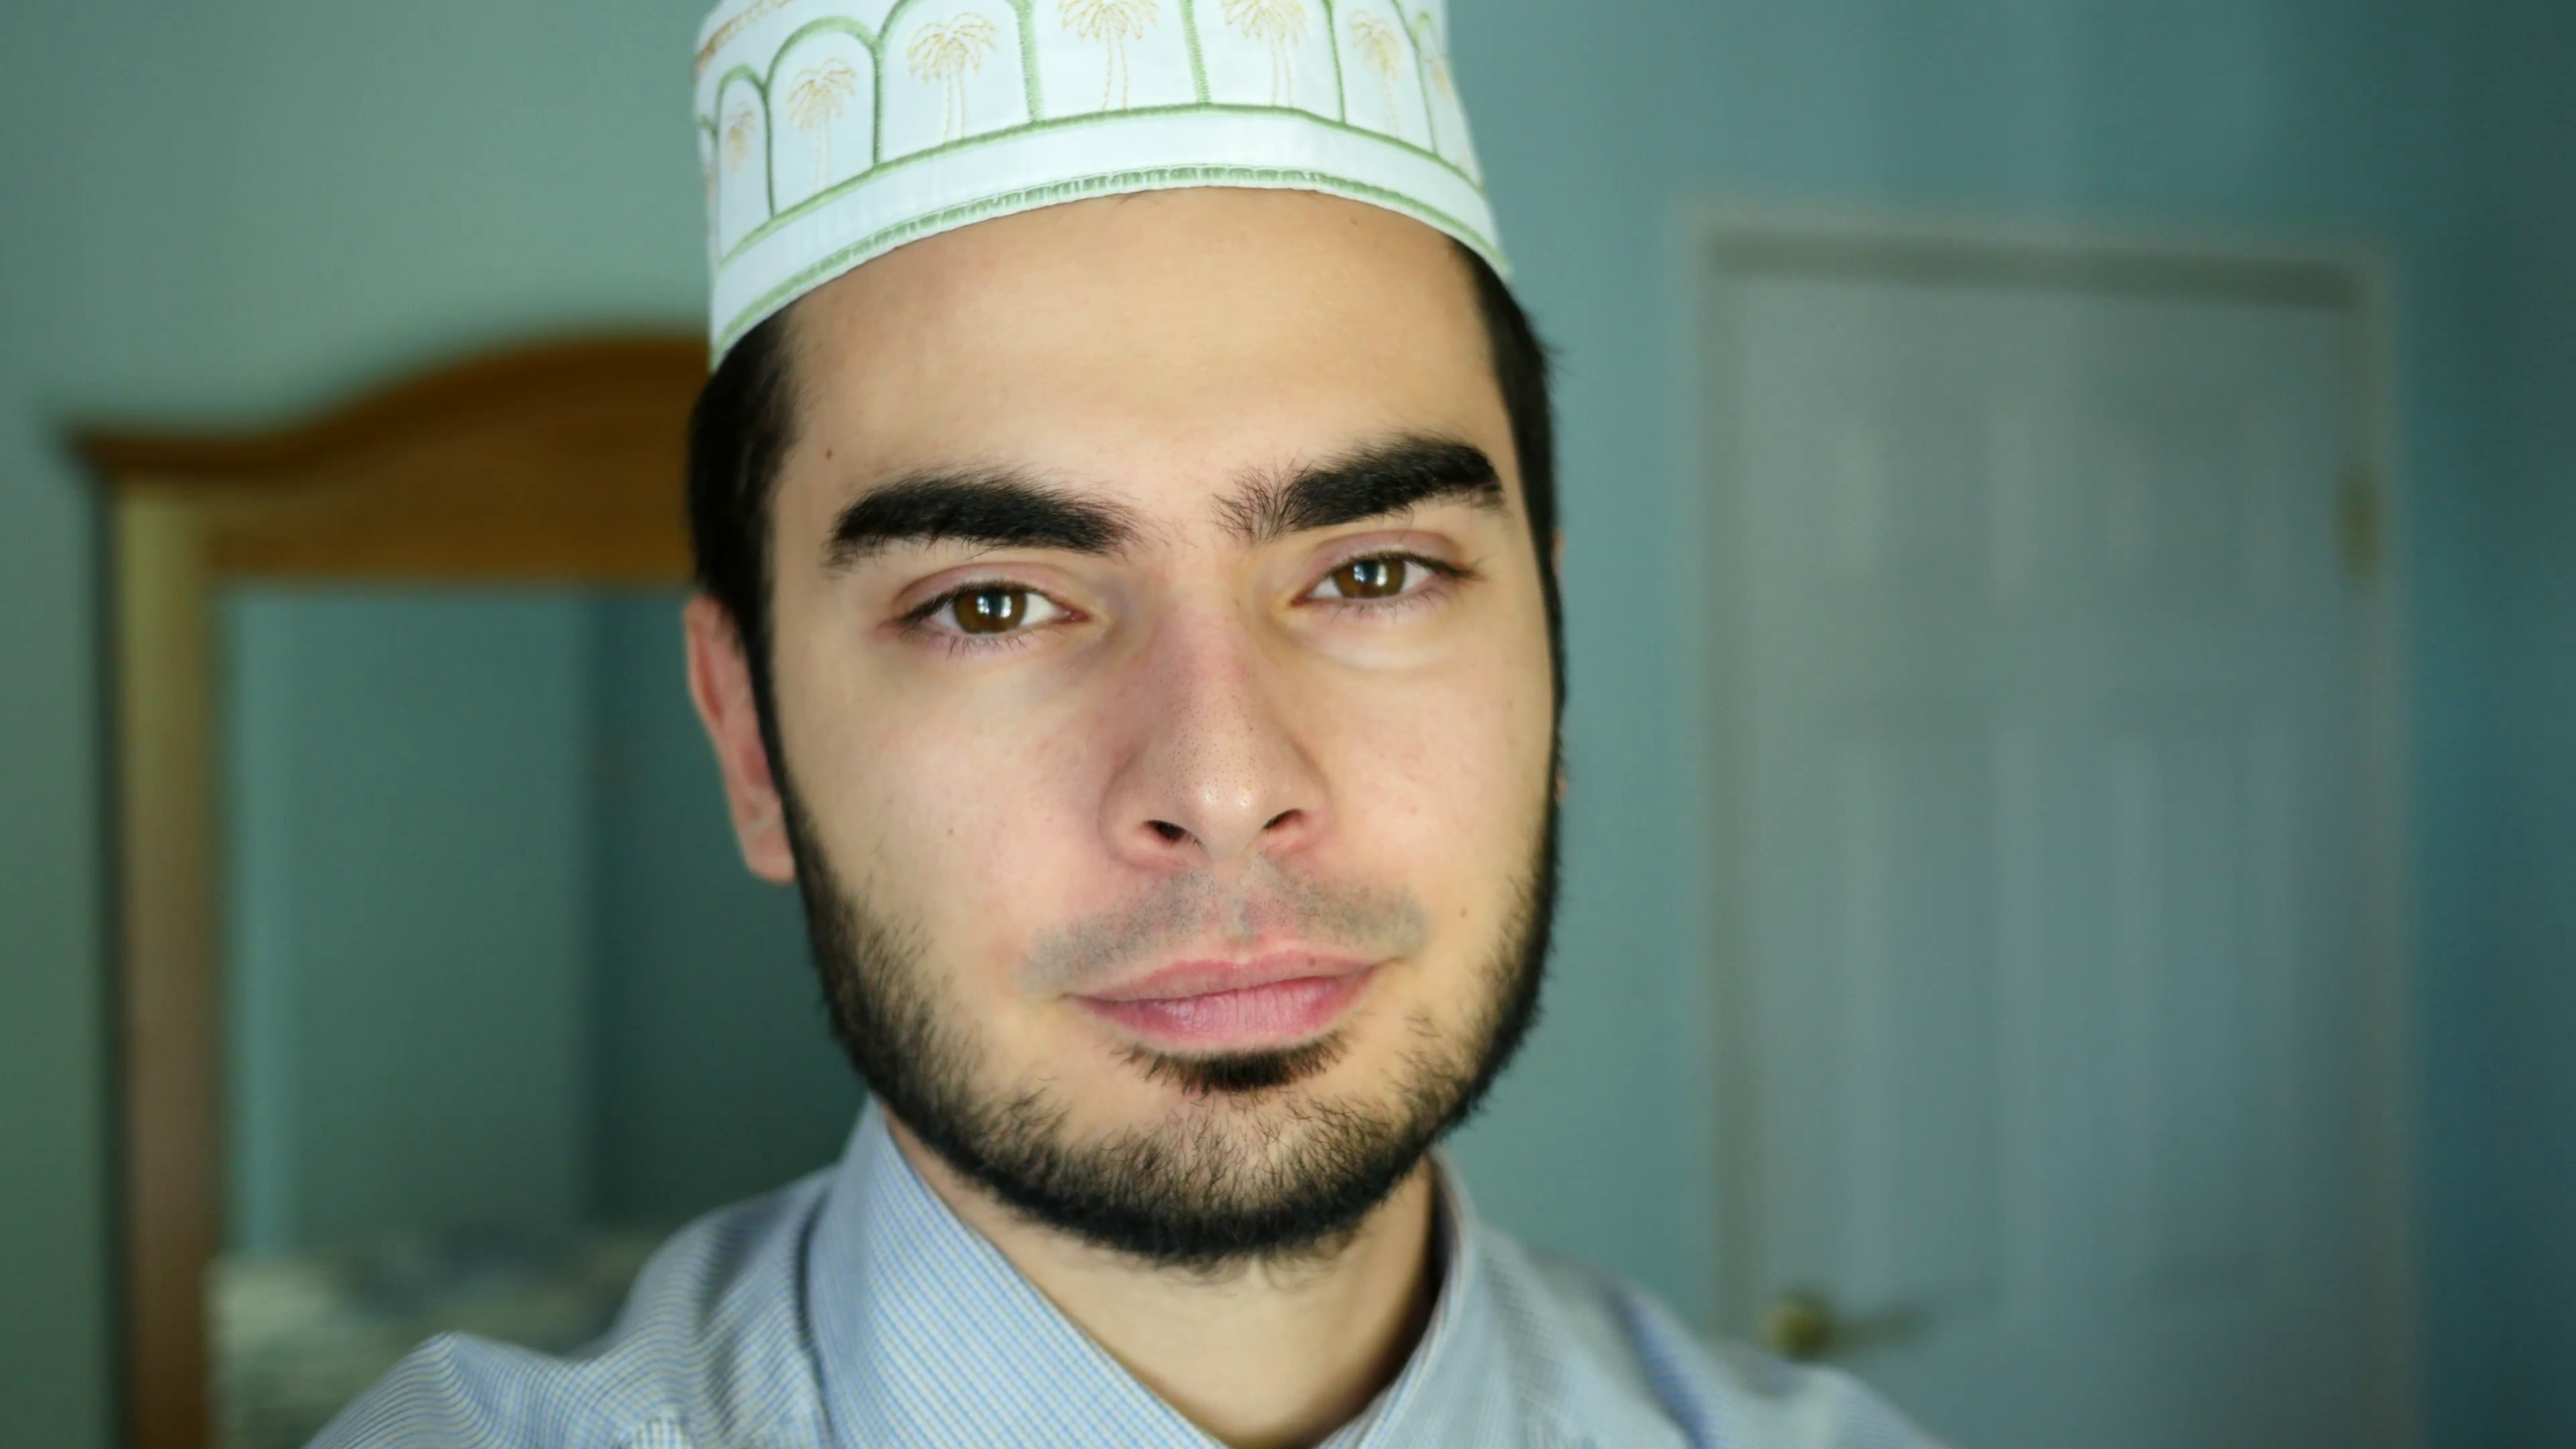 4K Arabic Muslim Man Portrait At Home Stock Video Footage - Videoblocks